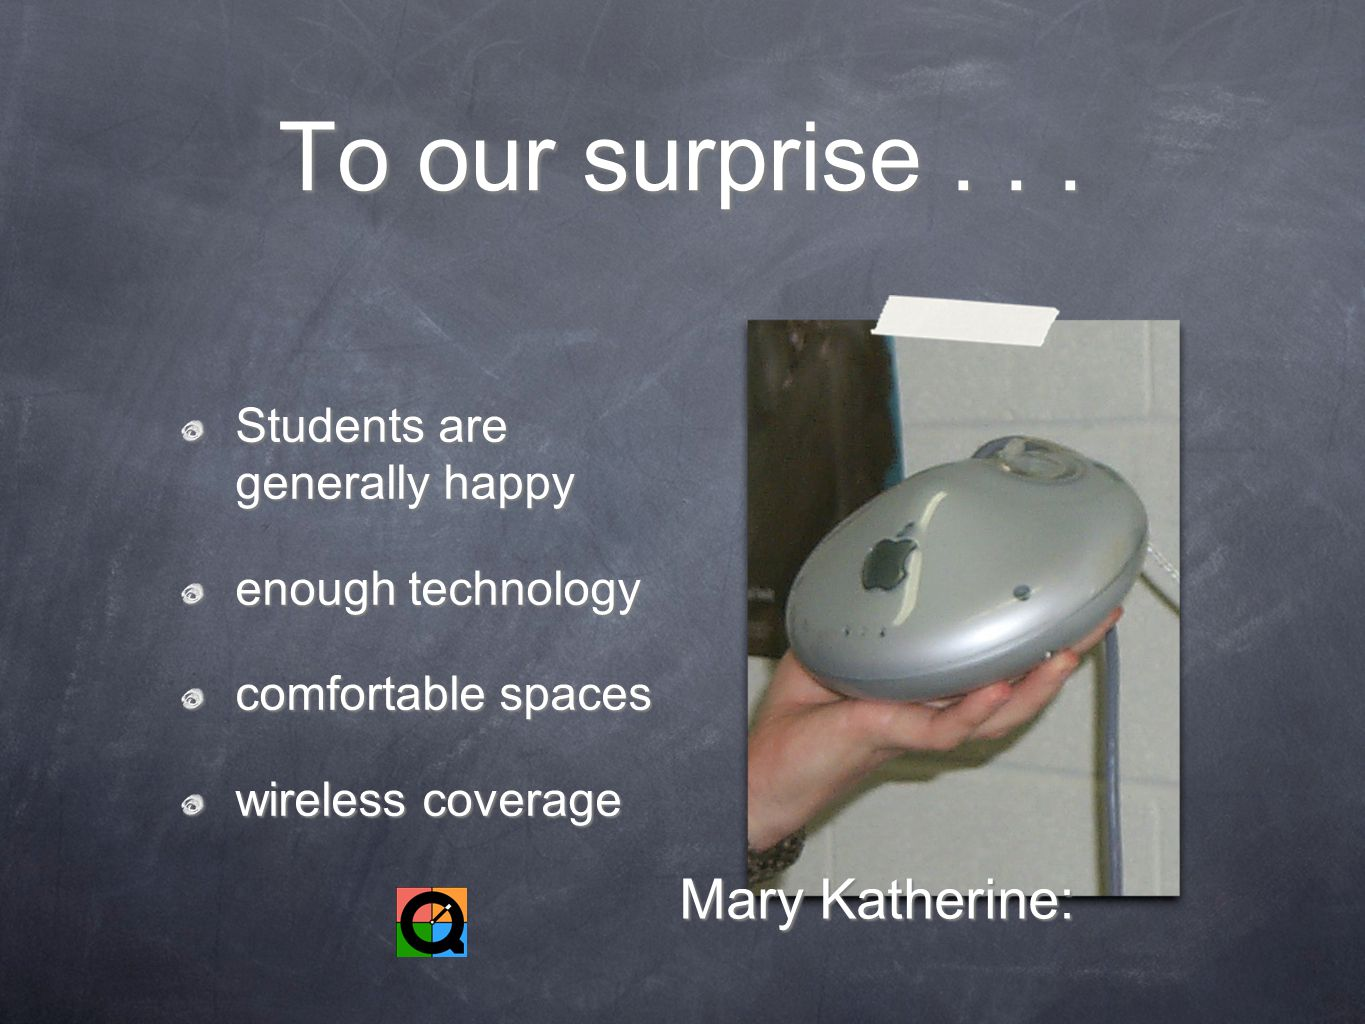 To our surprise...